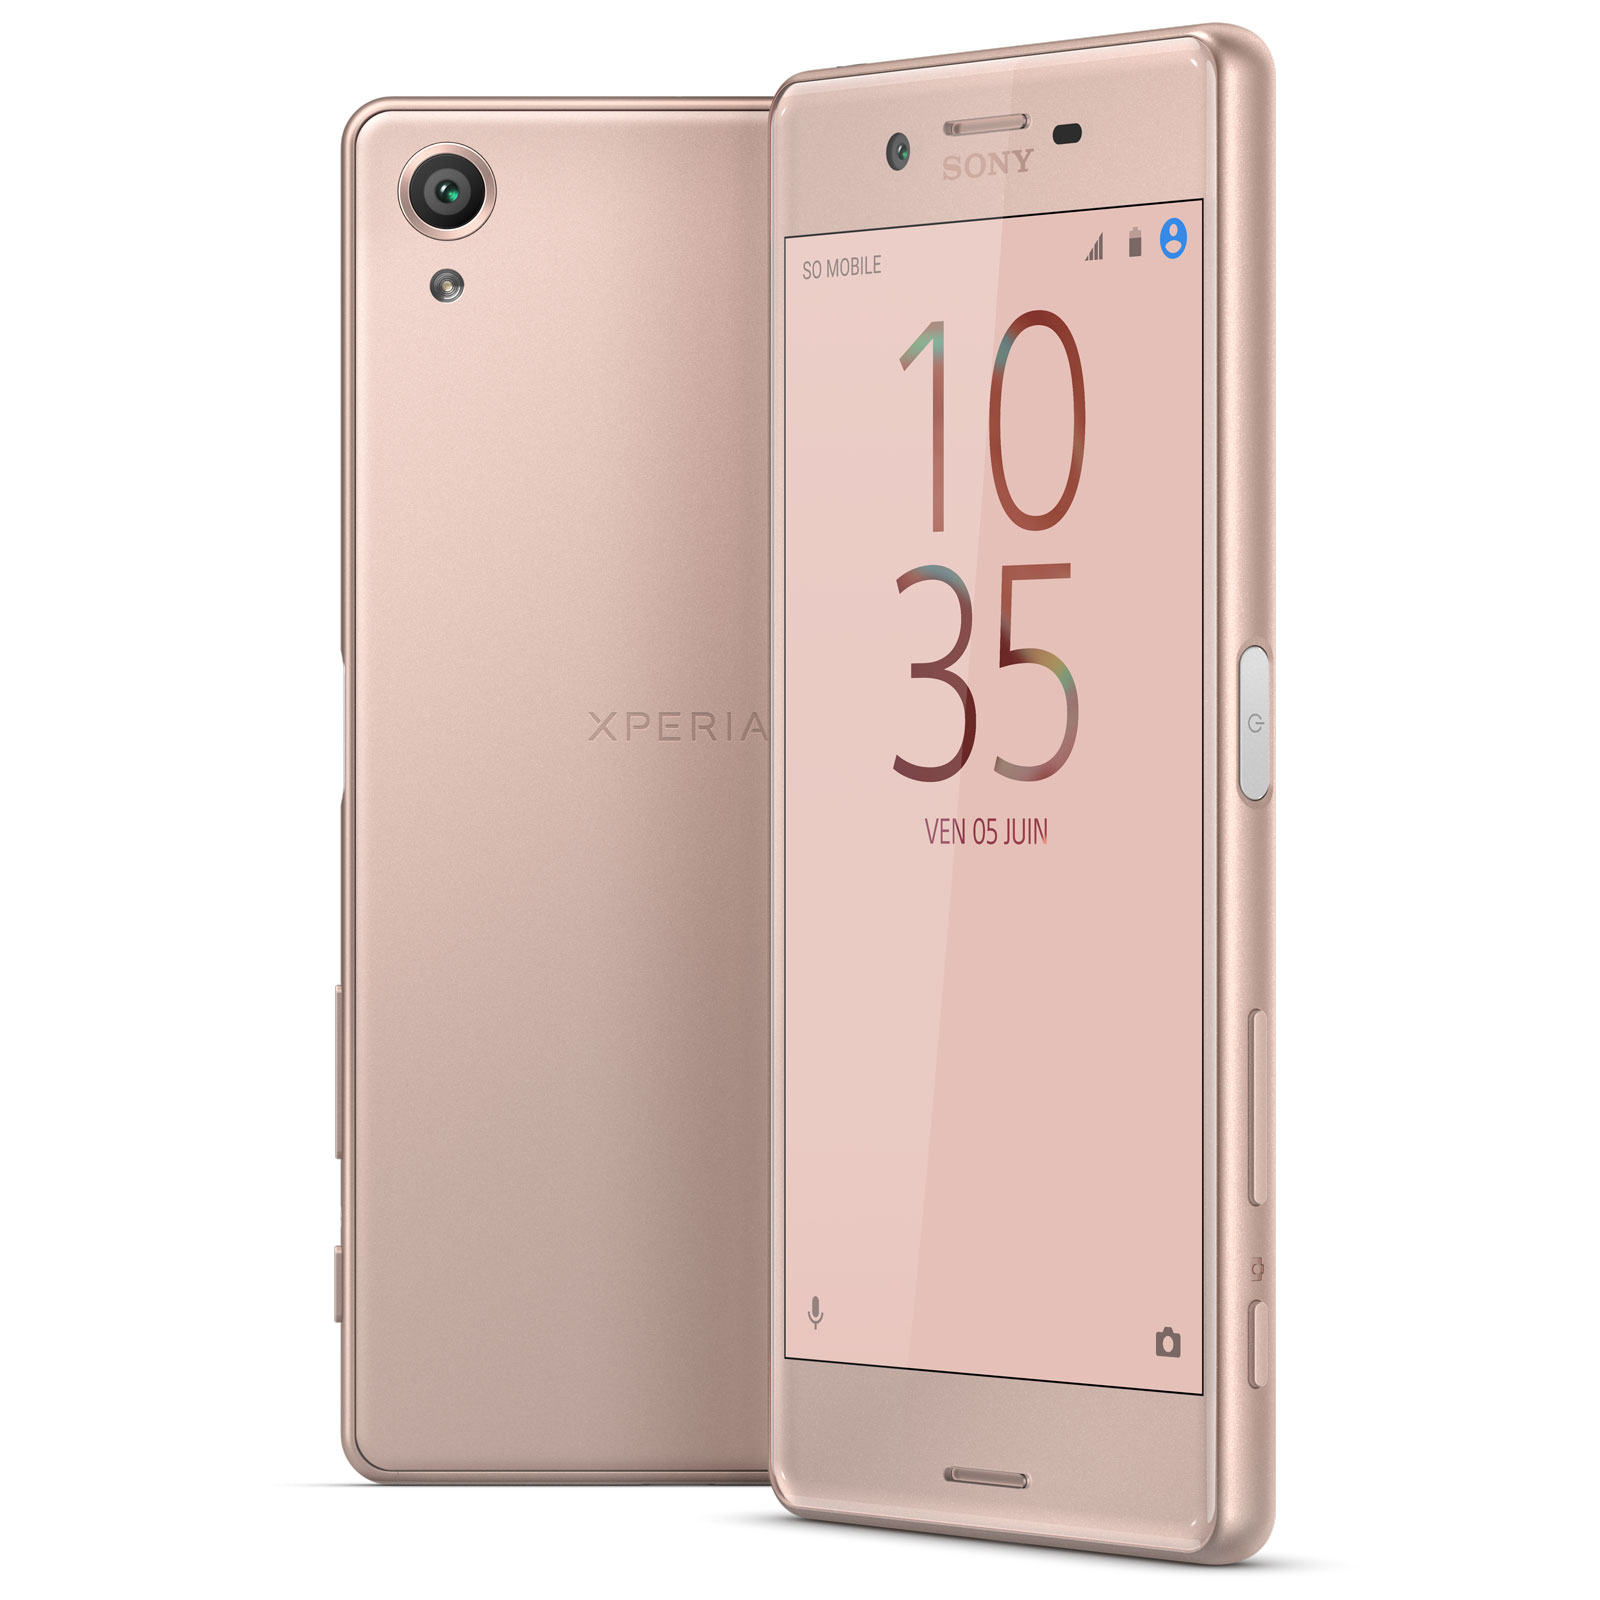 sony xperia x 32 go rose mobile smartphone sony sur. Black Bedroom Furniture Sets. Home Design Ideas